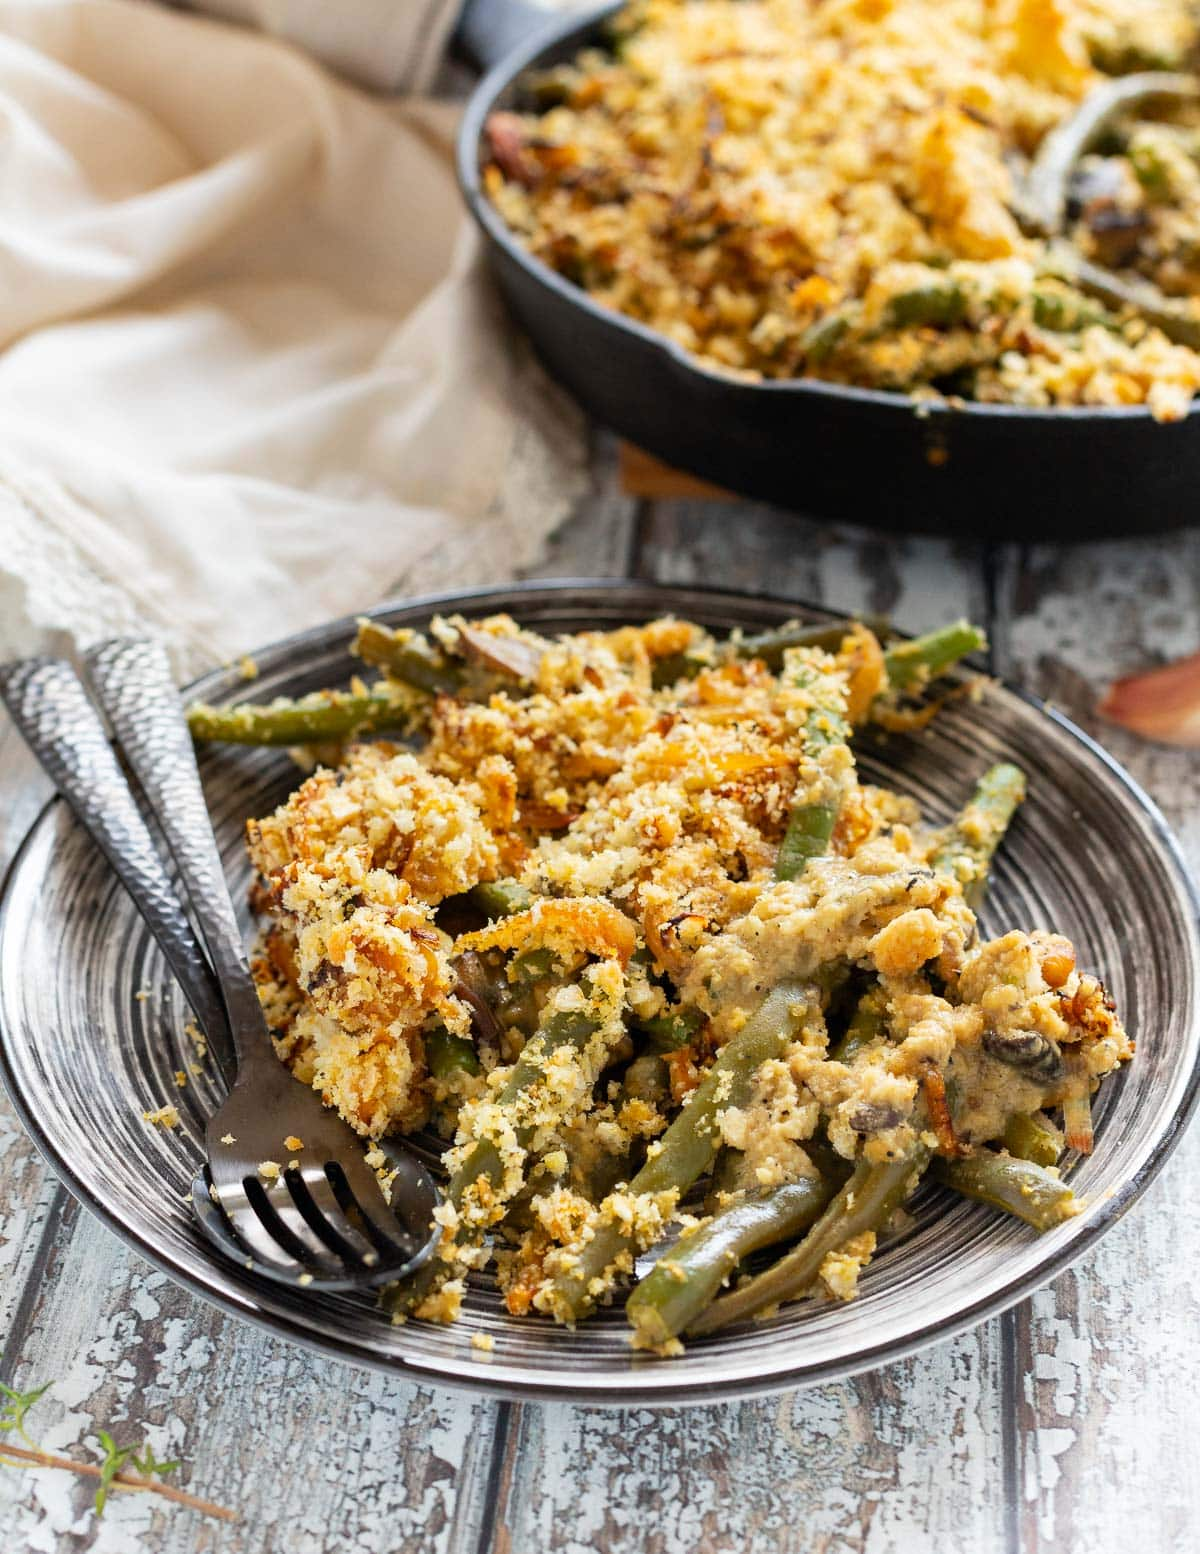 a portion of vegan green bean casserole on a plate